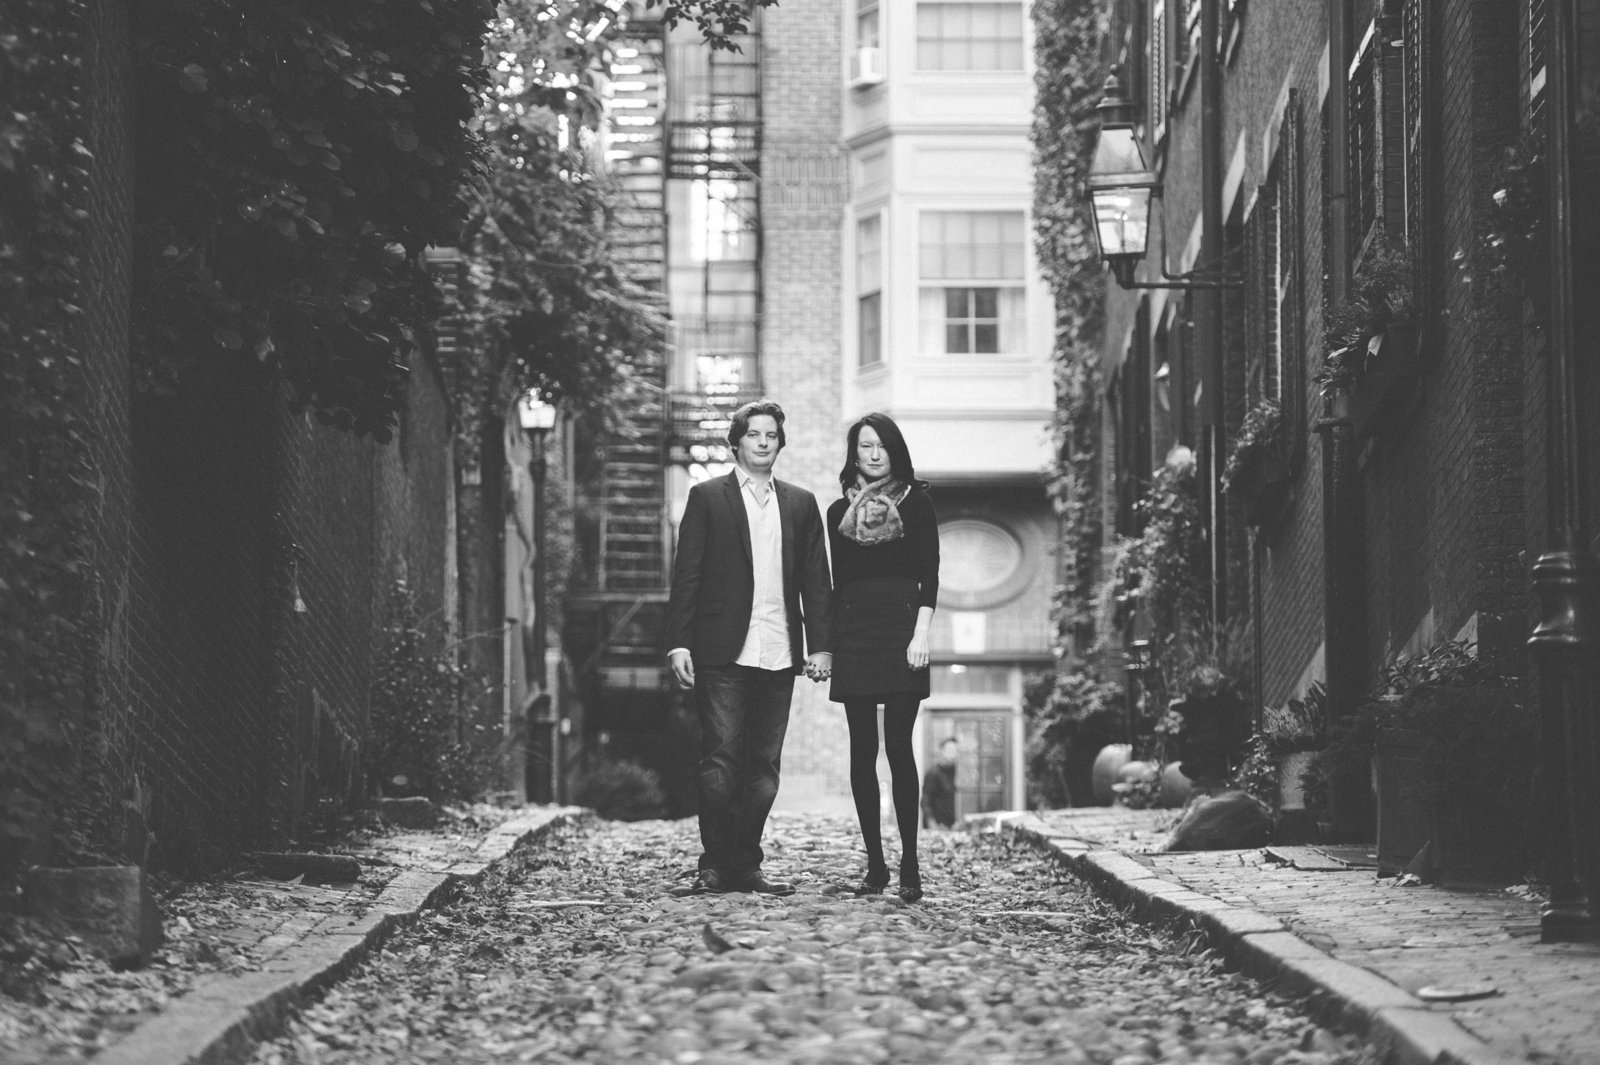 acorn street boston, engagement photos